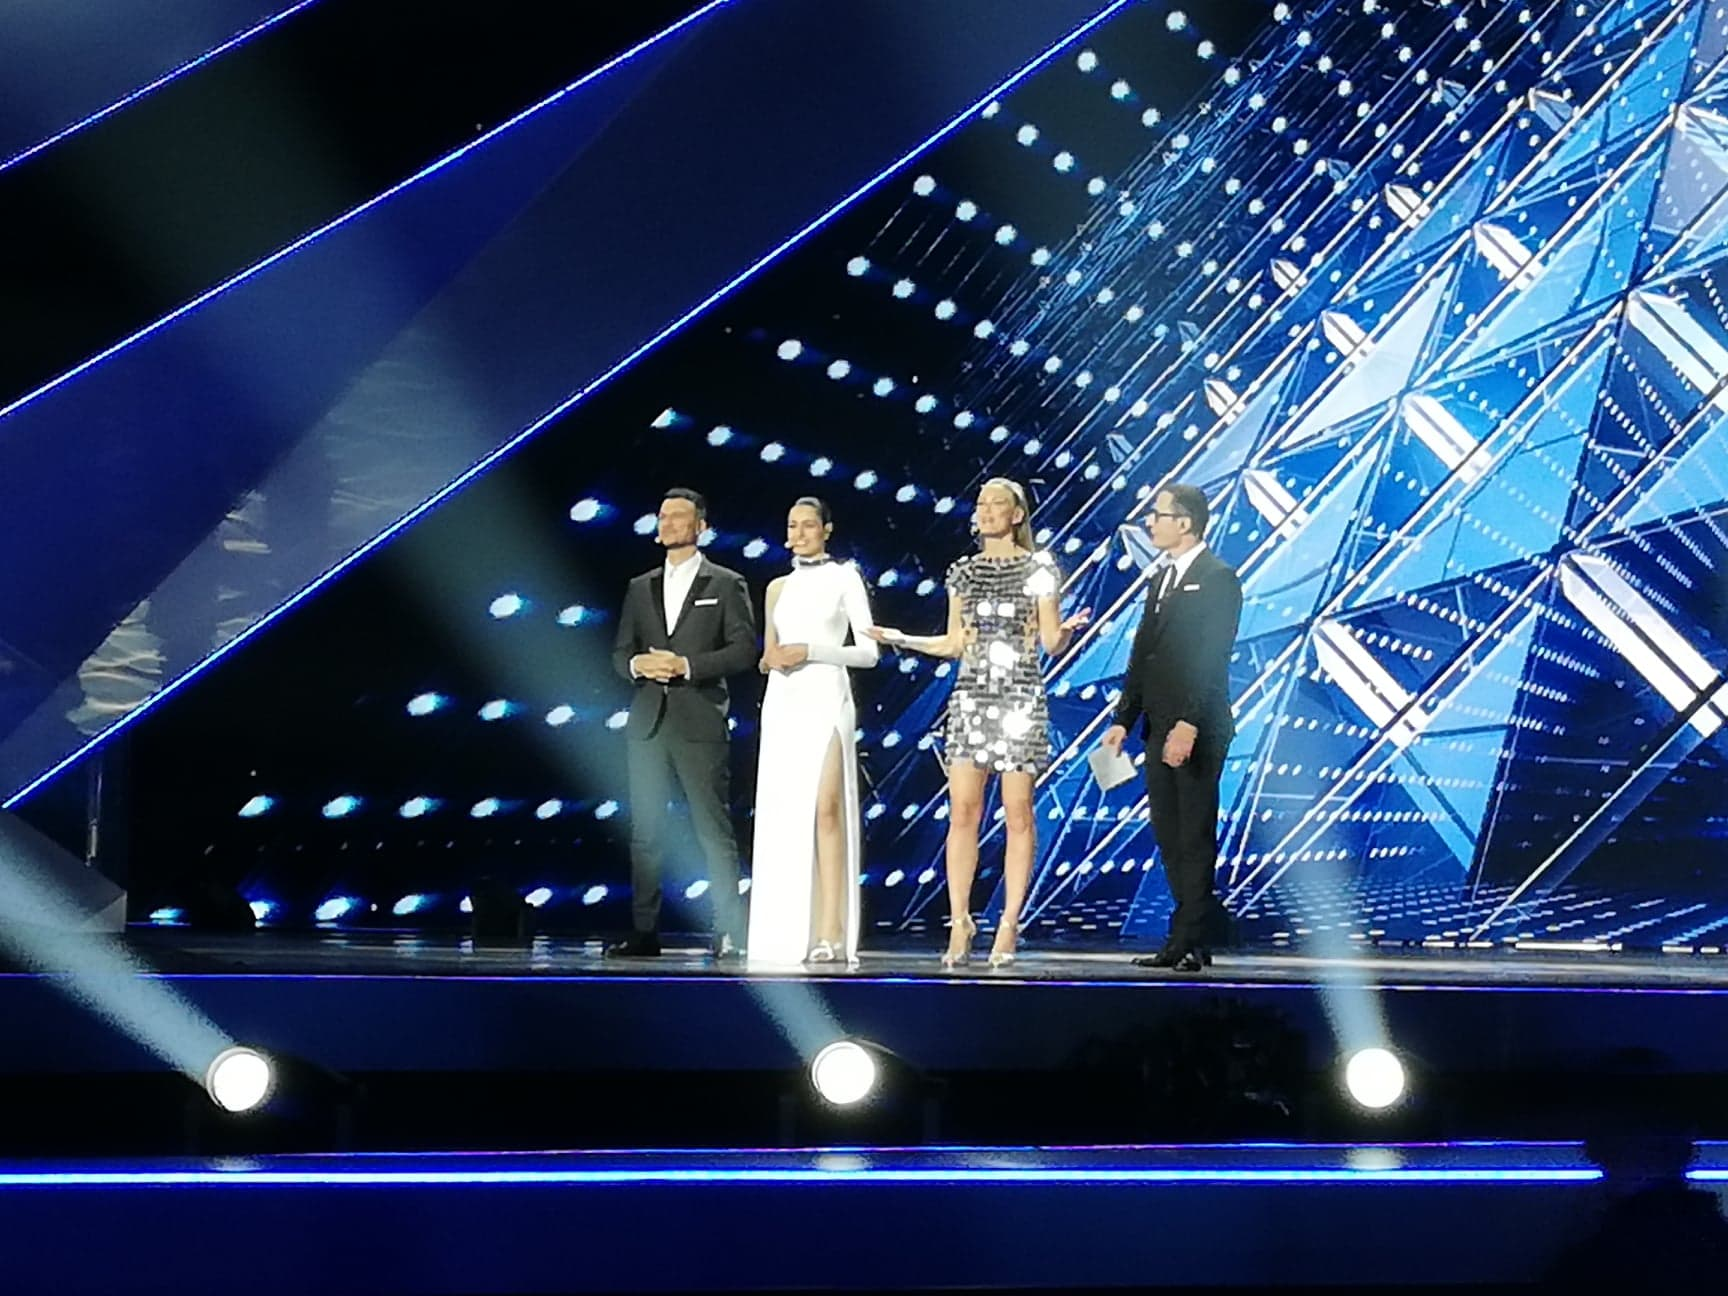 Tonight: The 1st Semi final of the Eurovision Song Contest 2019 takes place at Expo Tel Aviv